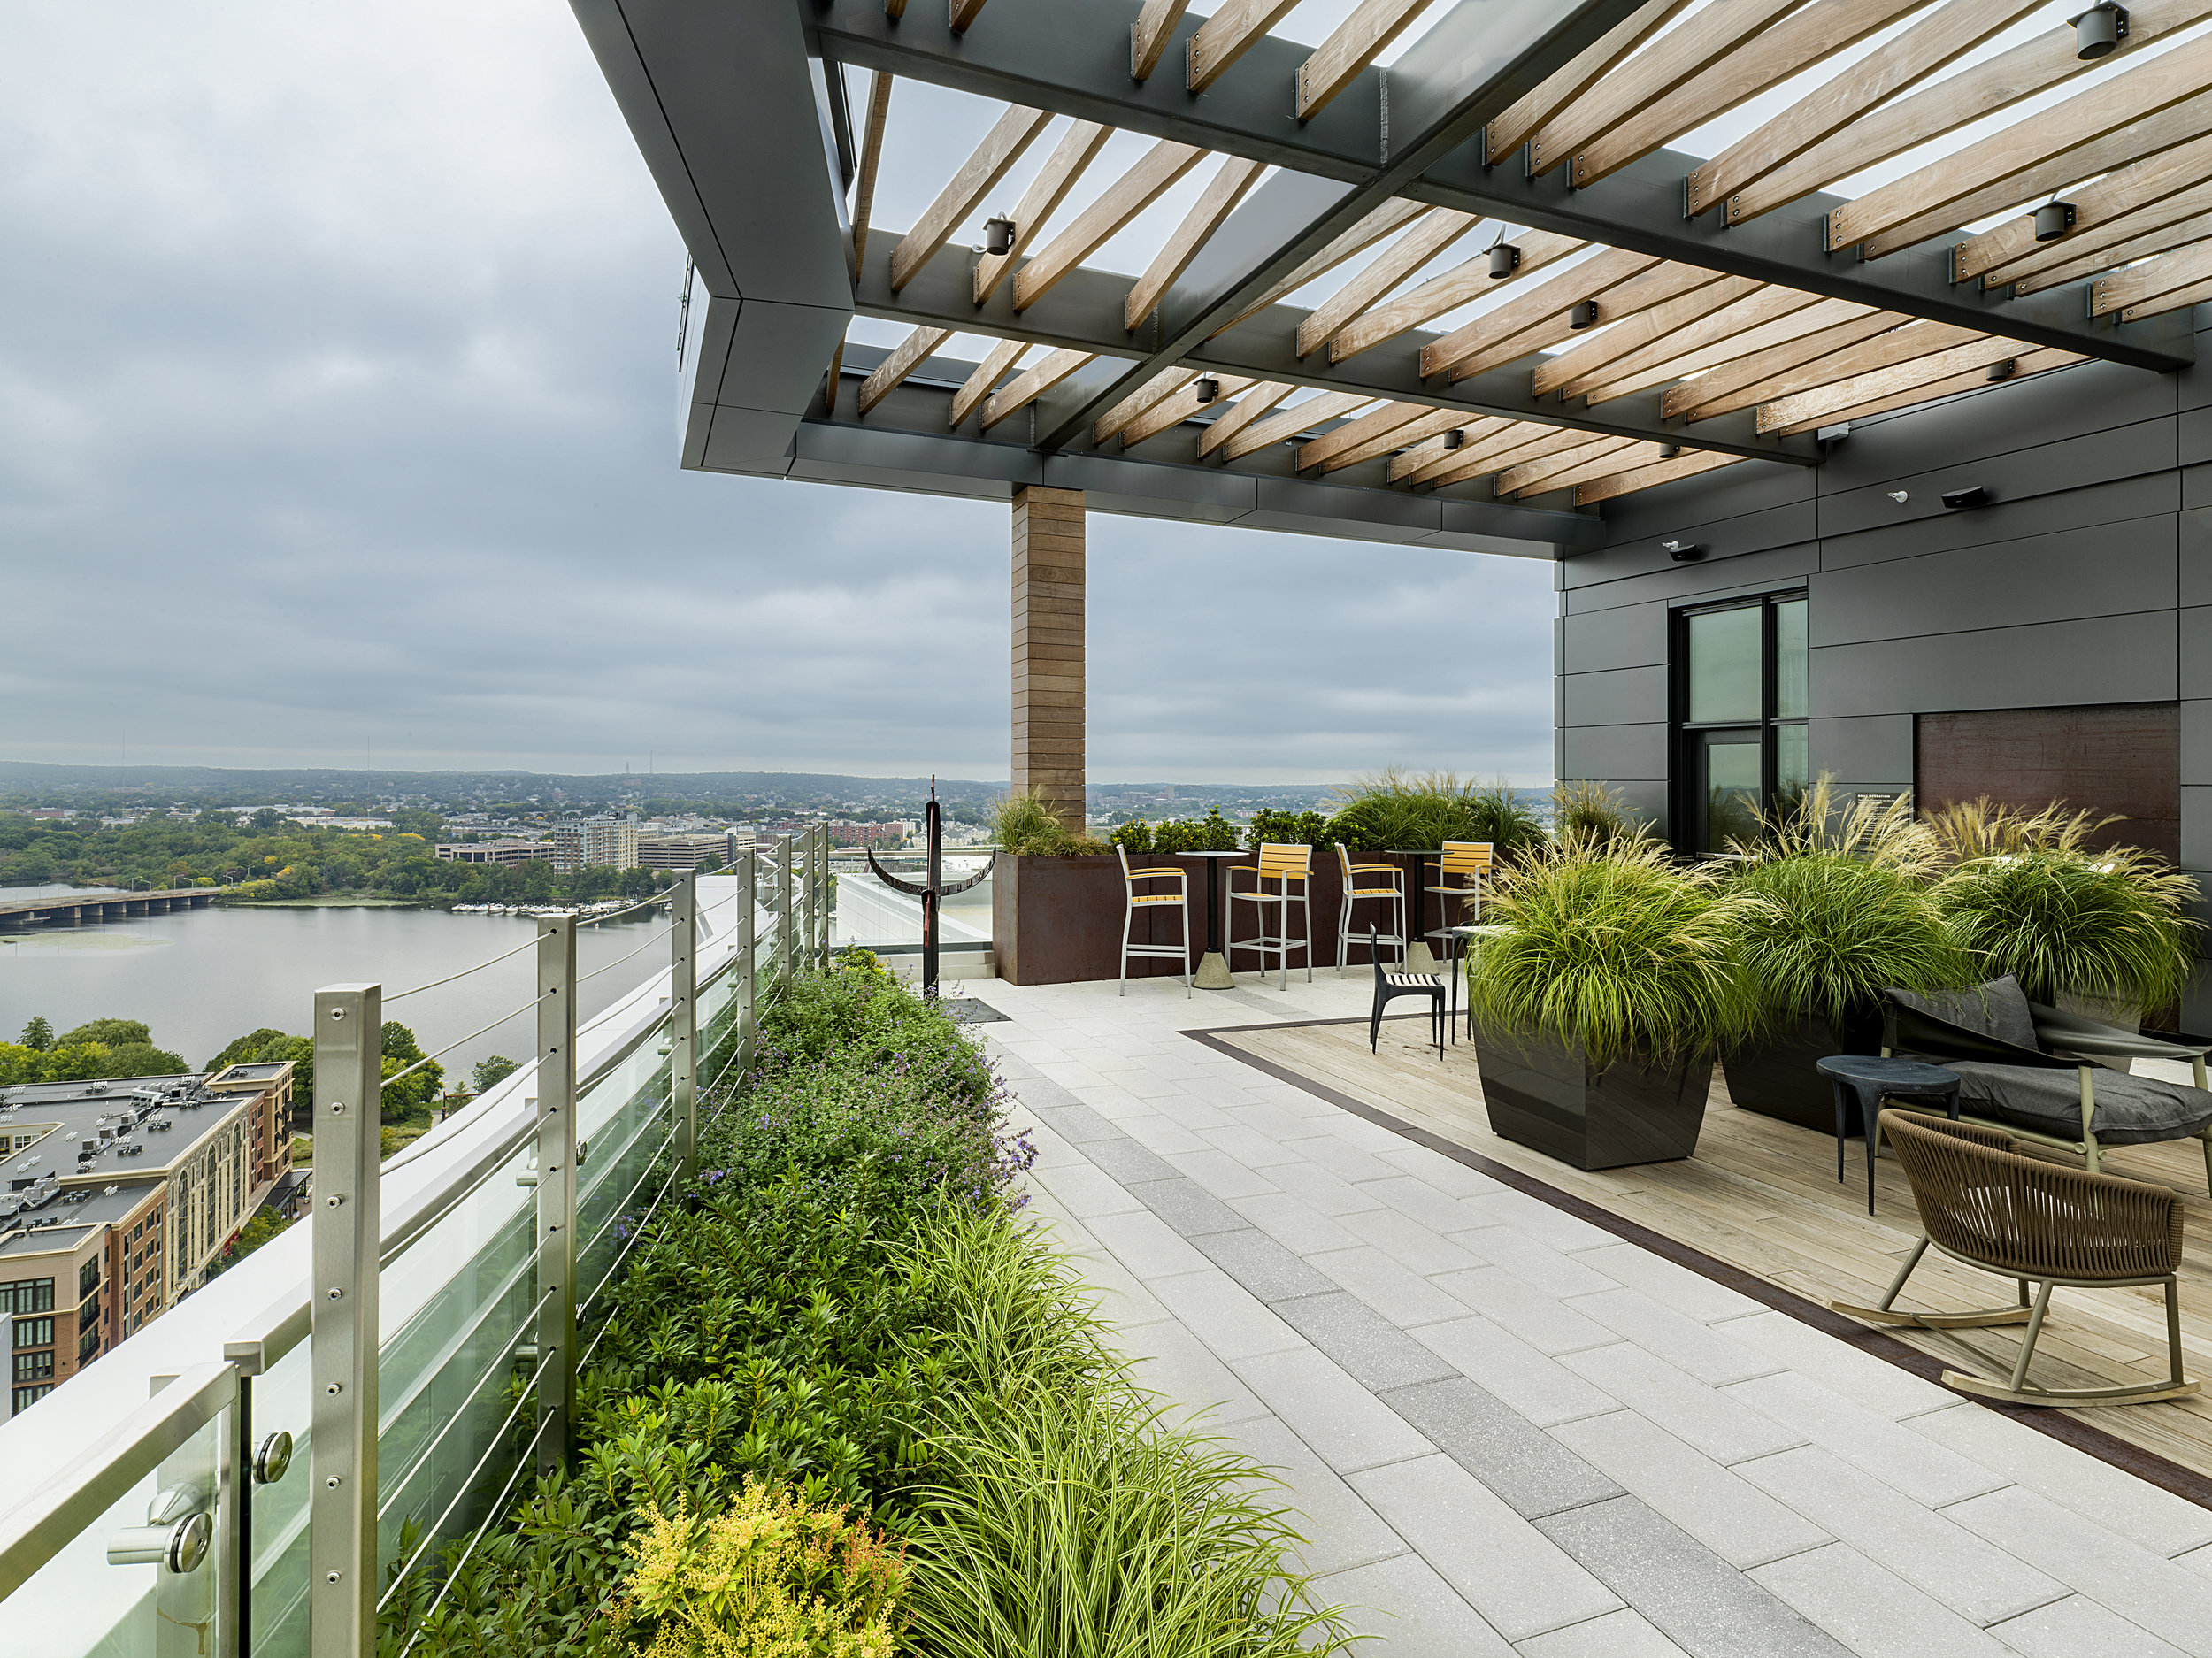 recover-green-roofs-patrick-rogers-photography-montaje-courtyard-skydeck-11-2018-12.jpg